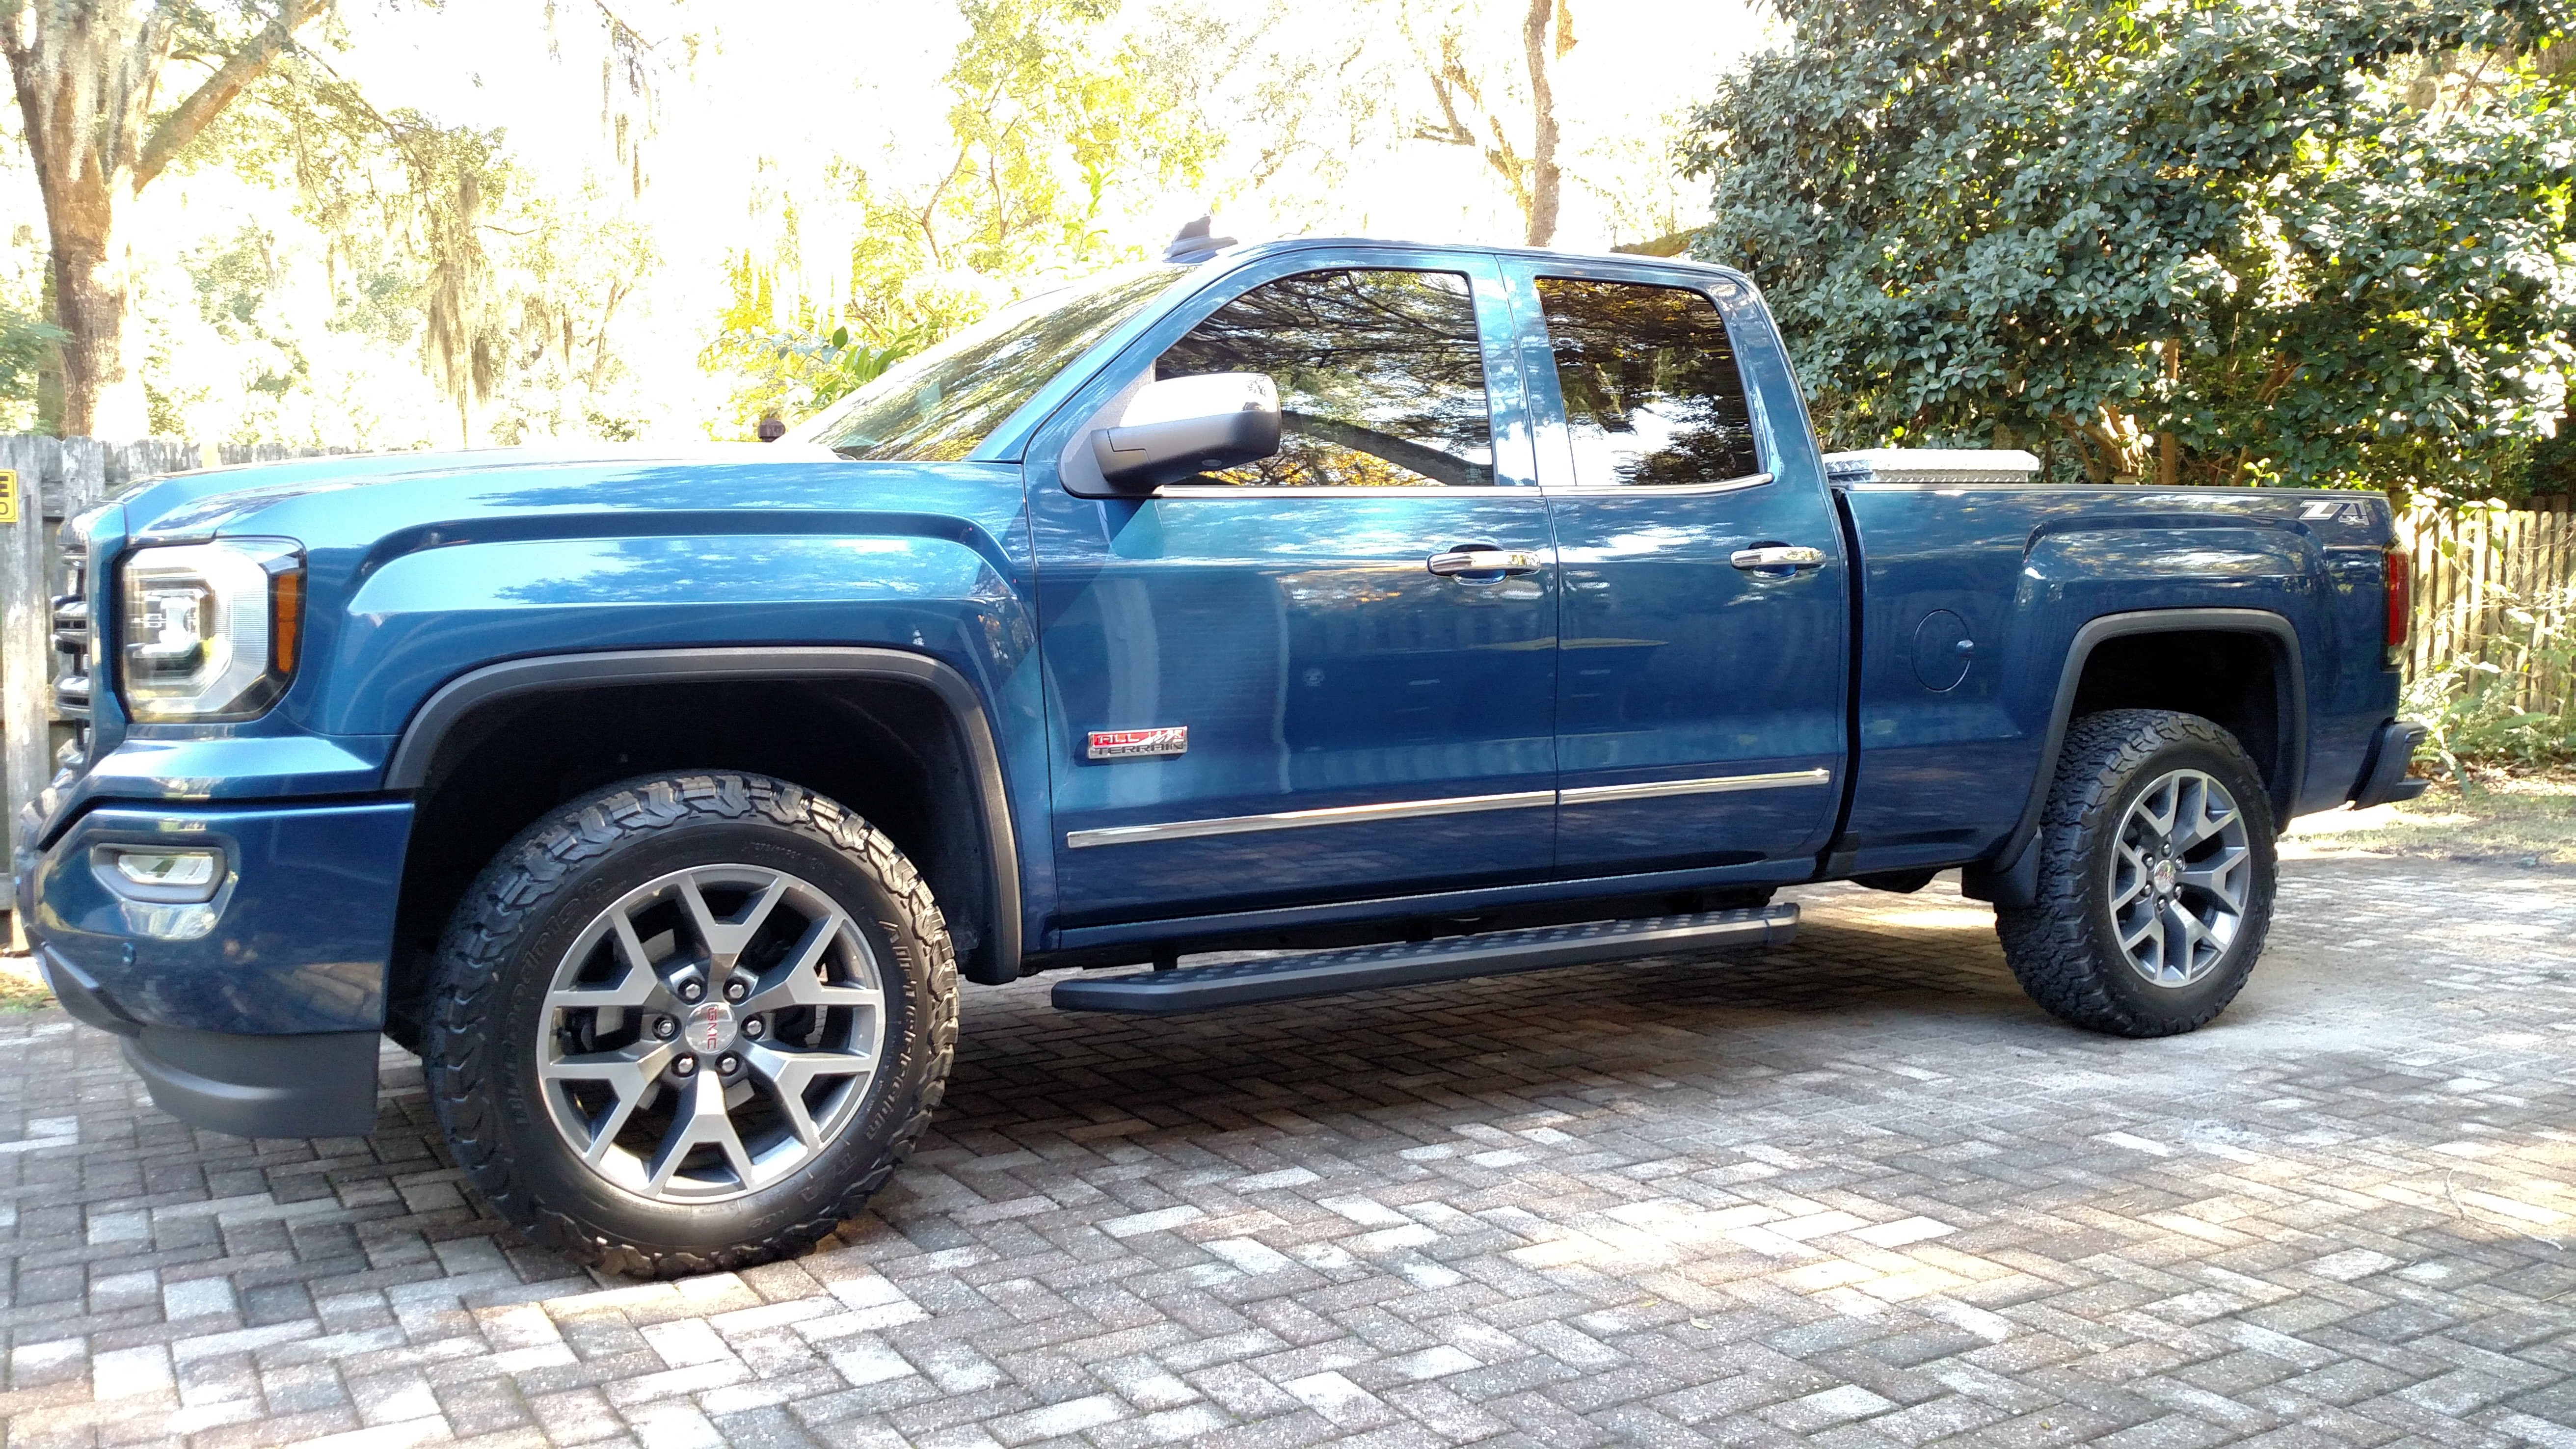 Interior 20Color 91000365 in addition 2018 Gmc Wireless Charging in addition 2013 as well 291052398808 likewise Bakflip Mx4 448122 Hard Folding Truck Bed Cover. on 2014 gmc sierra double cab